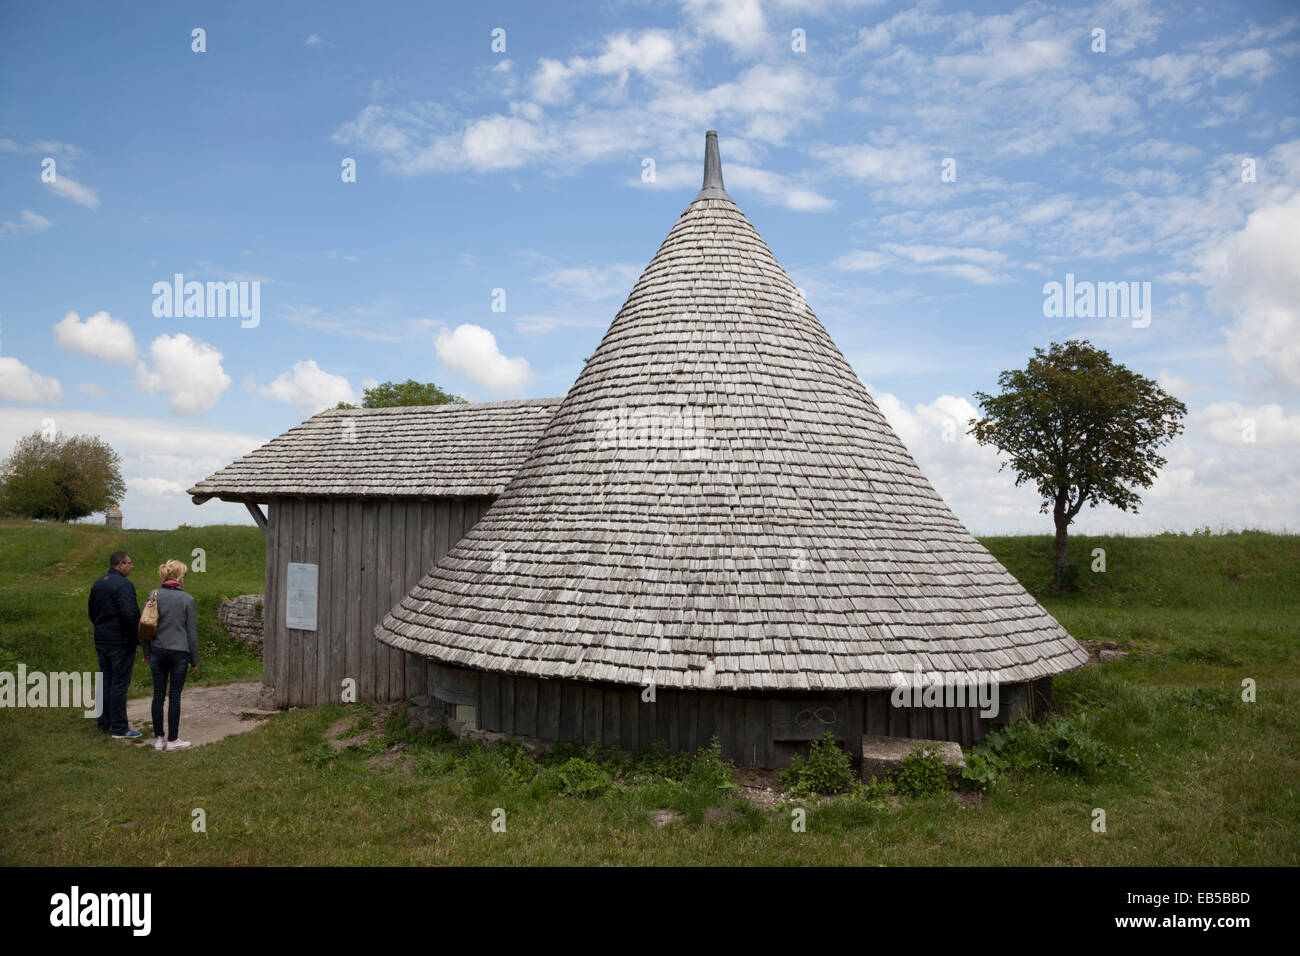 The cold room of Brouage: half-buried and covered with a roof of shingles, the building could hold up to 22 tons - Stock Image